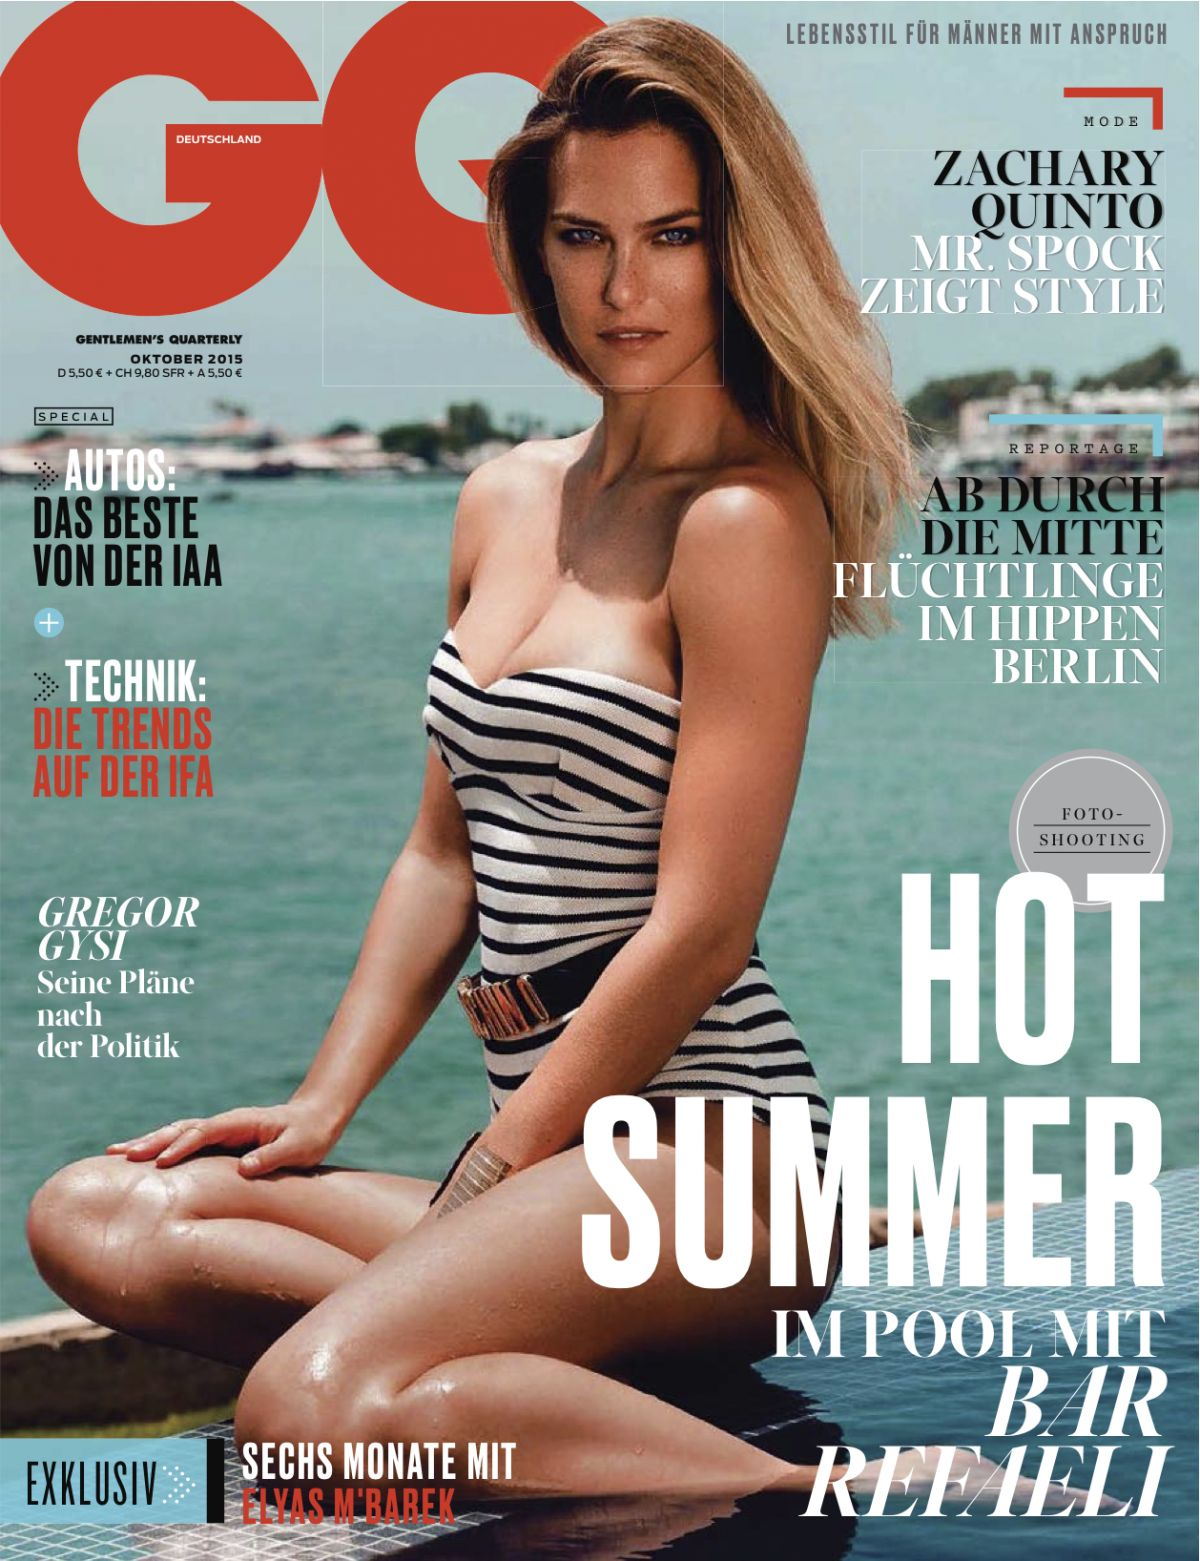 2015 Gq Men Of The Year Party In Los Angeles: BAR REFAELI In GQ Magazine, Germany October 2015 Issue